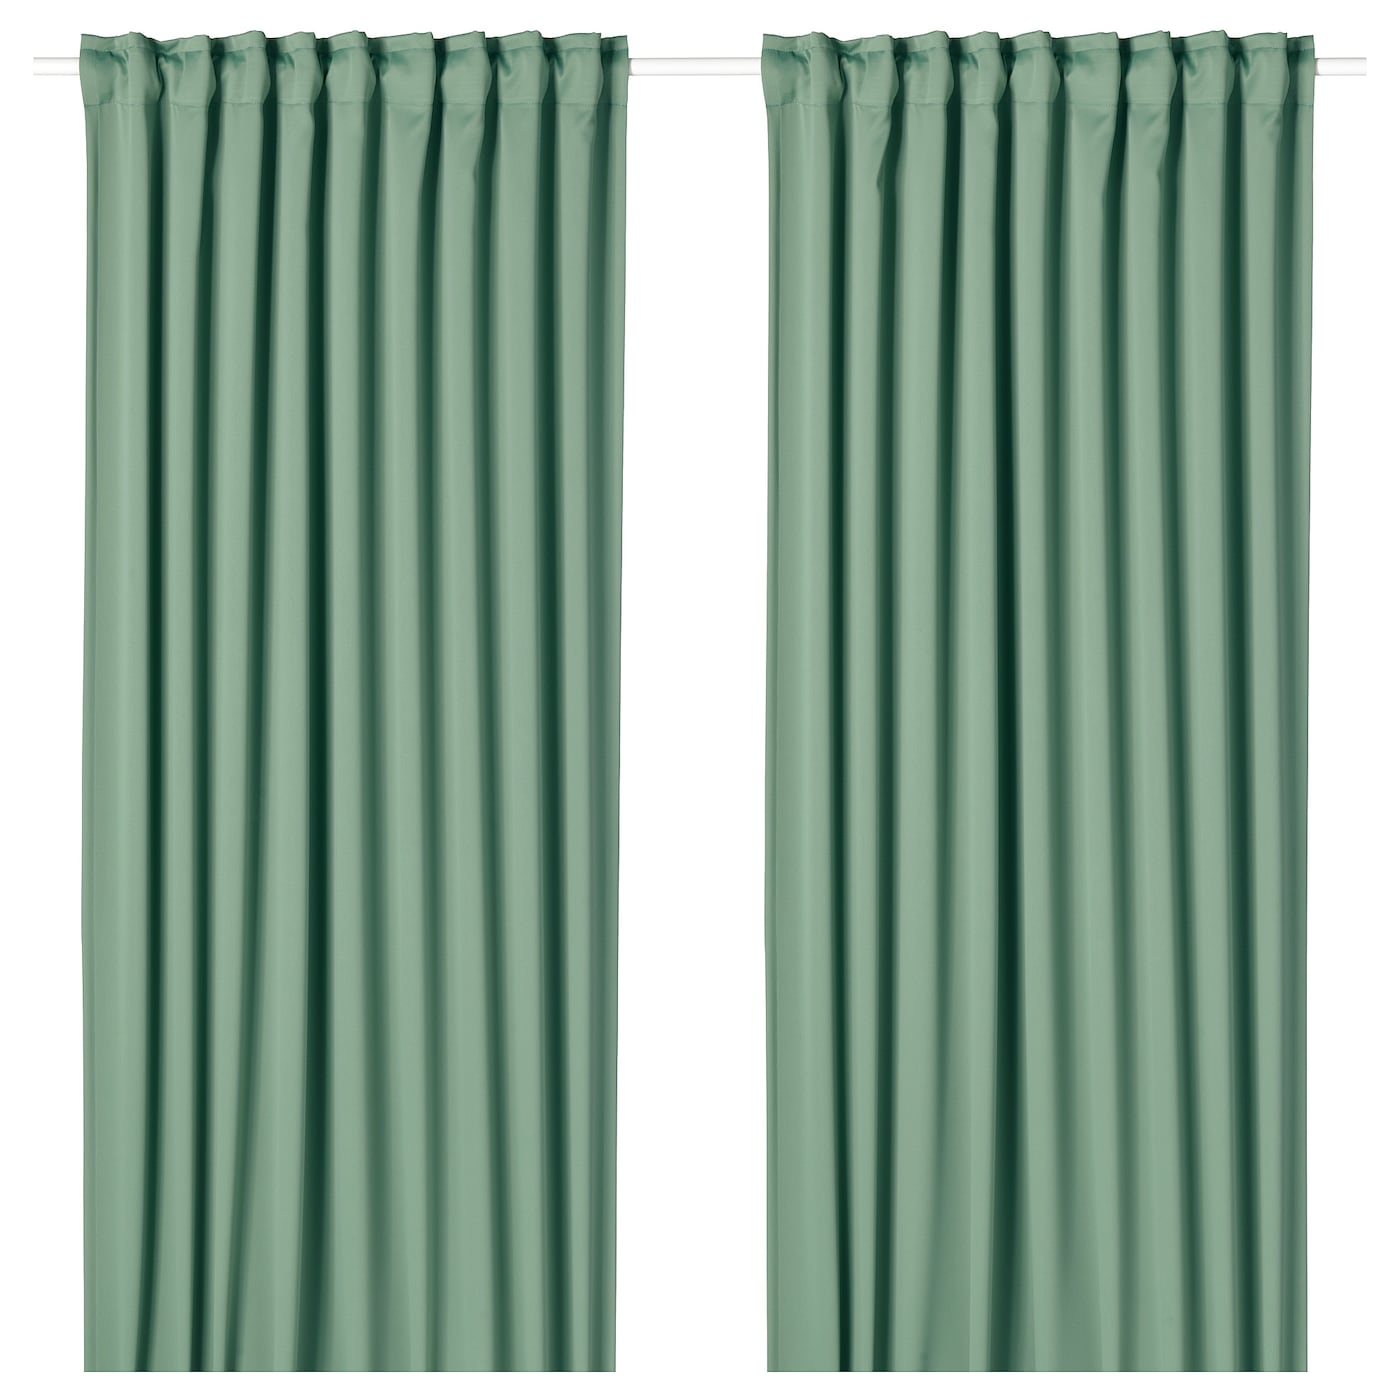 Blackout Curtains Blackout Eyelet Curtains More Ikea